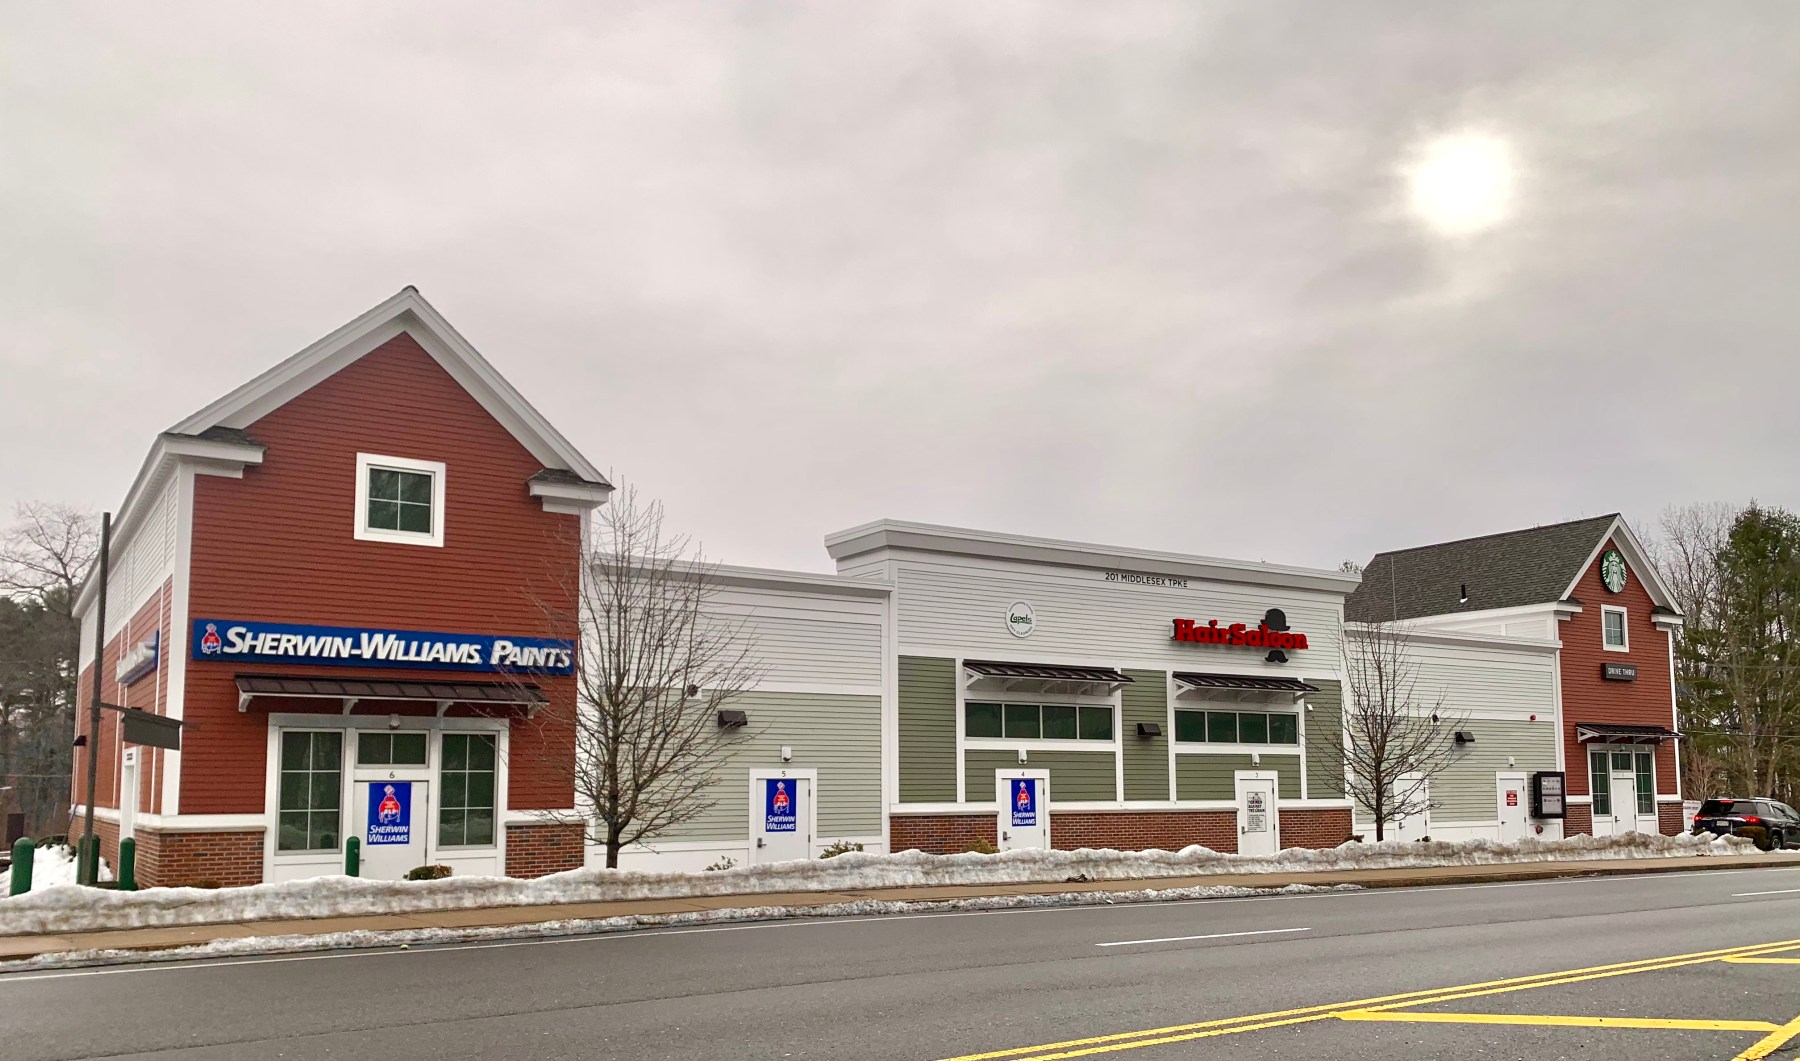 201 Middlesex Turnpike, Burlington MA including Sherwin-Williams and Starbucks